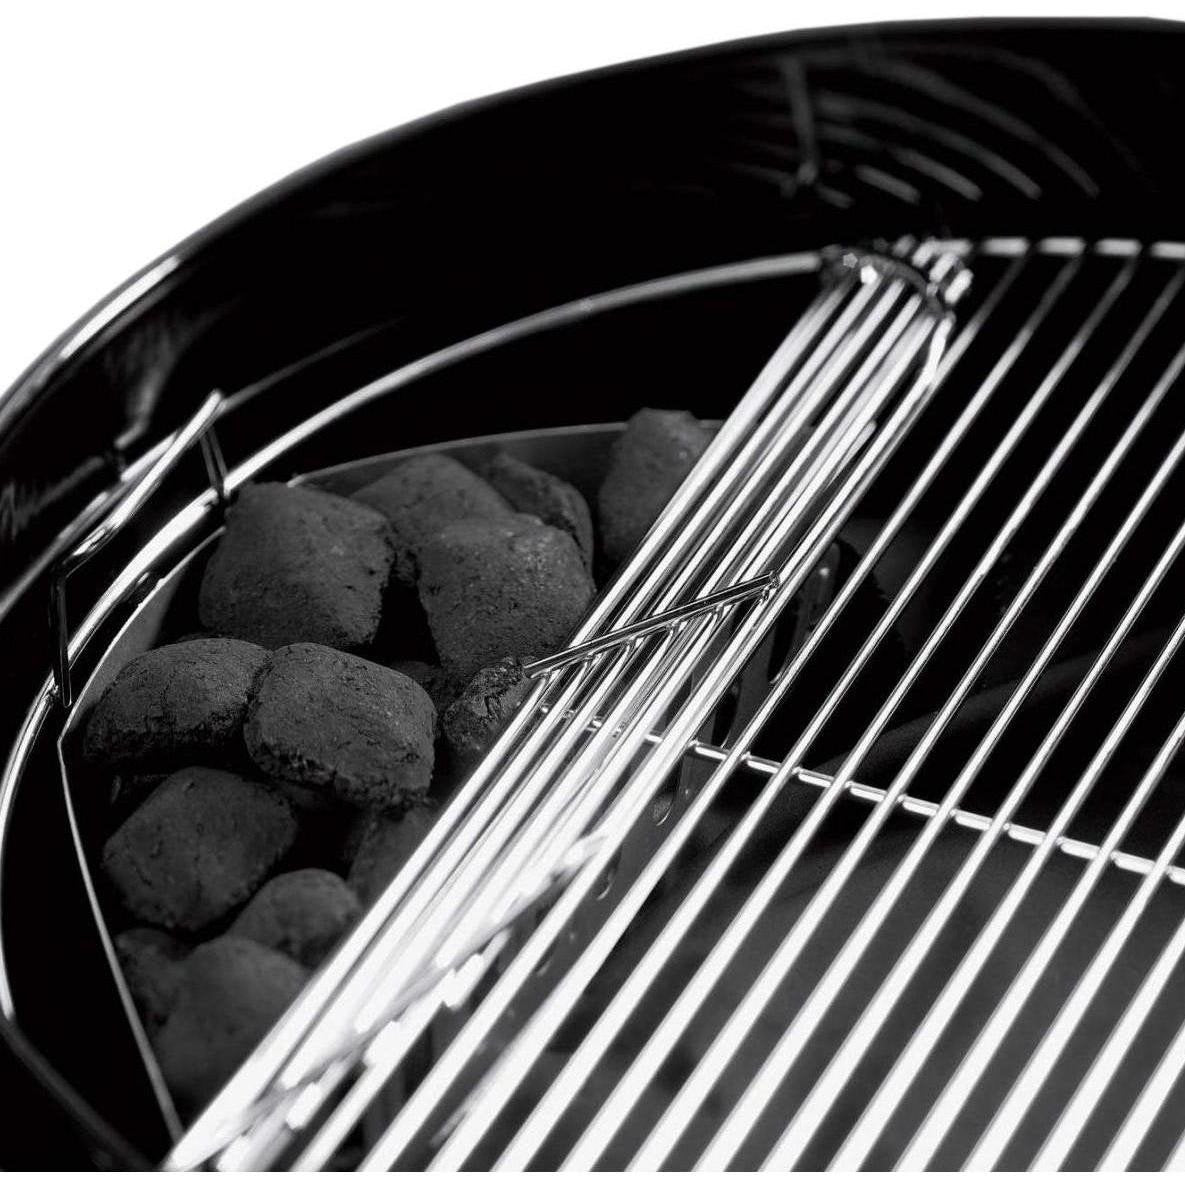 Weber Original Kettle Premium 22-Inch Charcoal Grill, Black